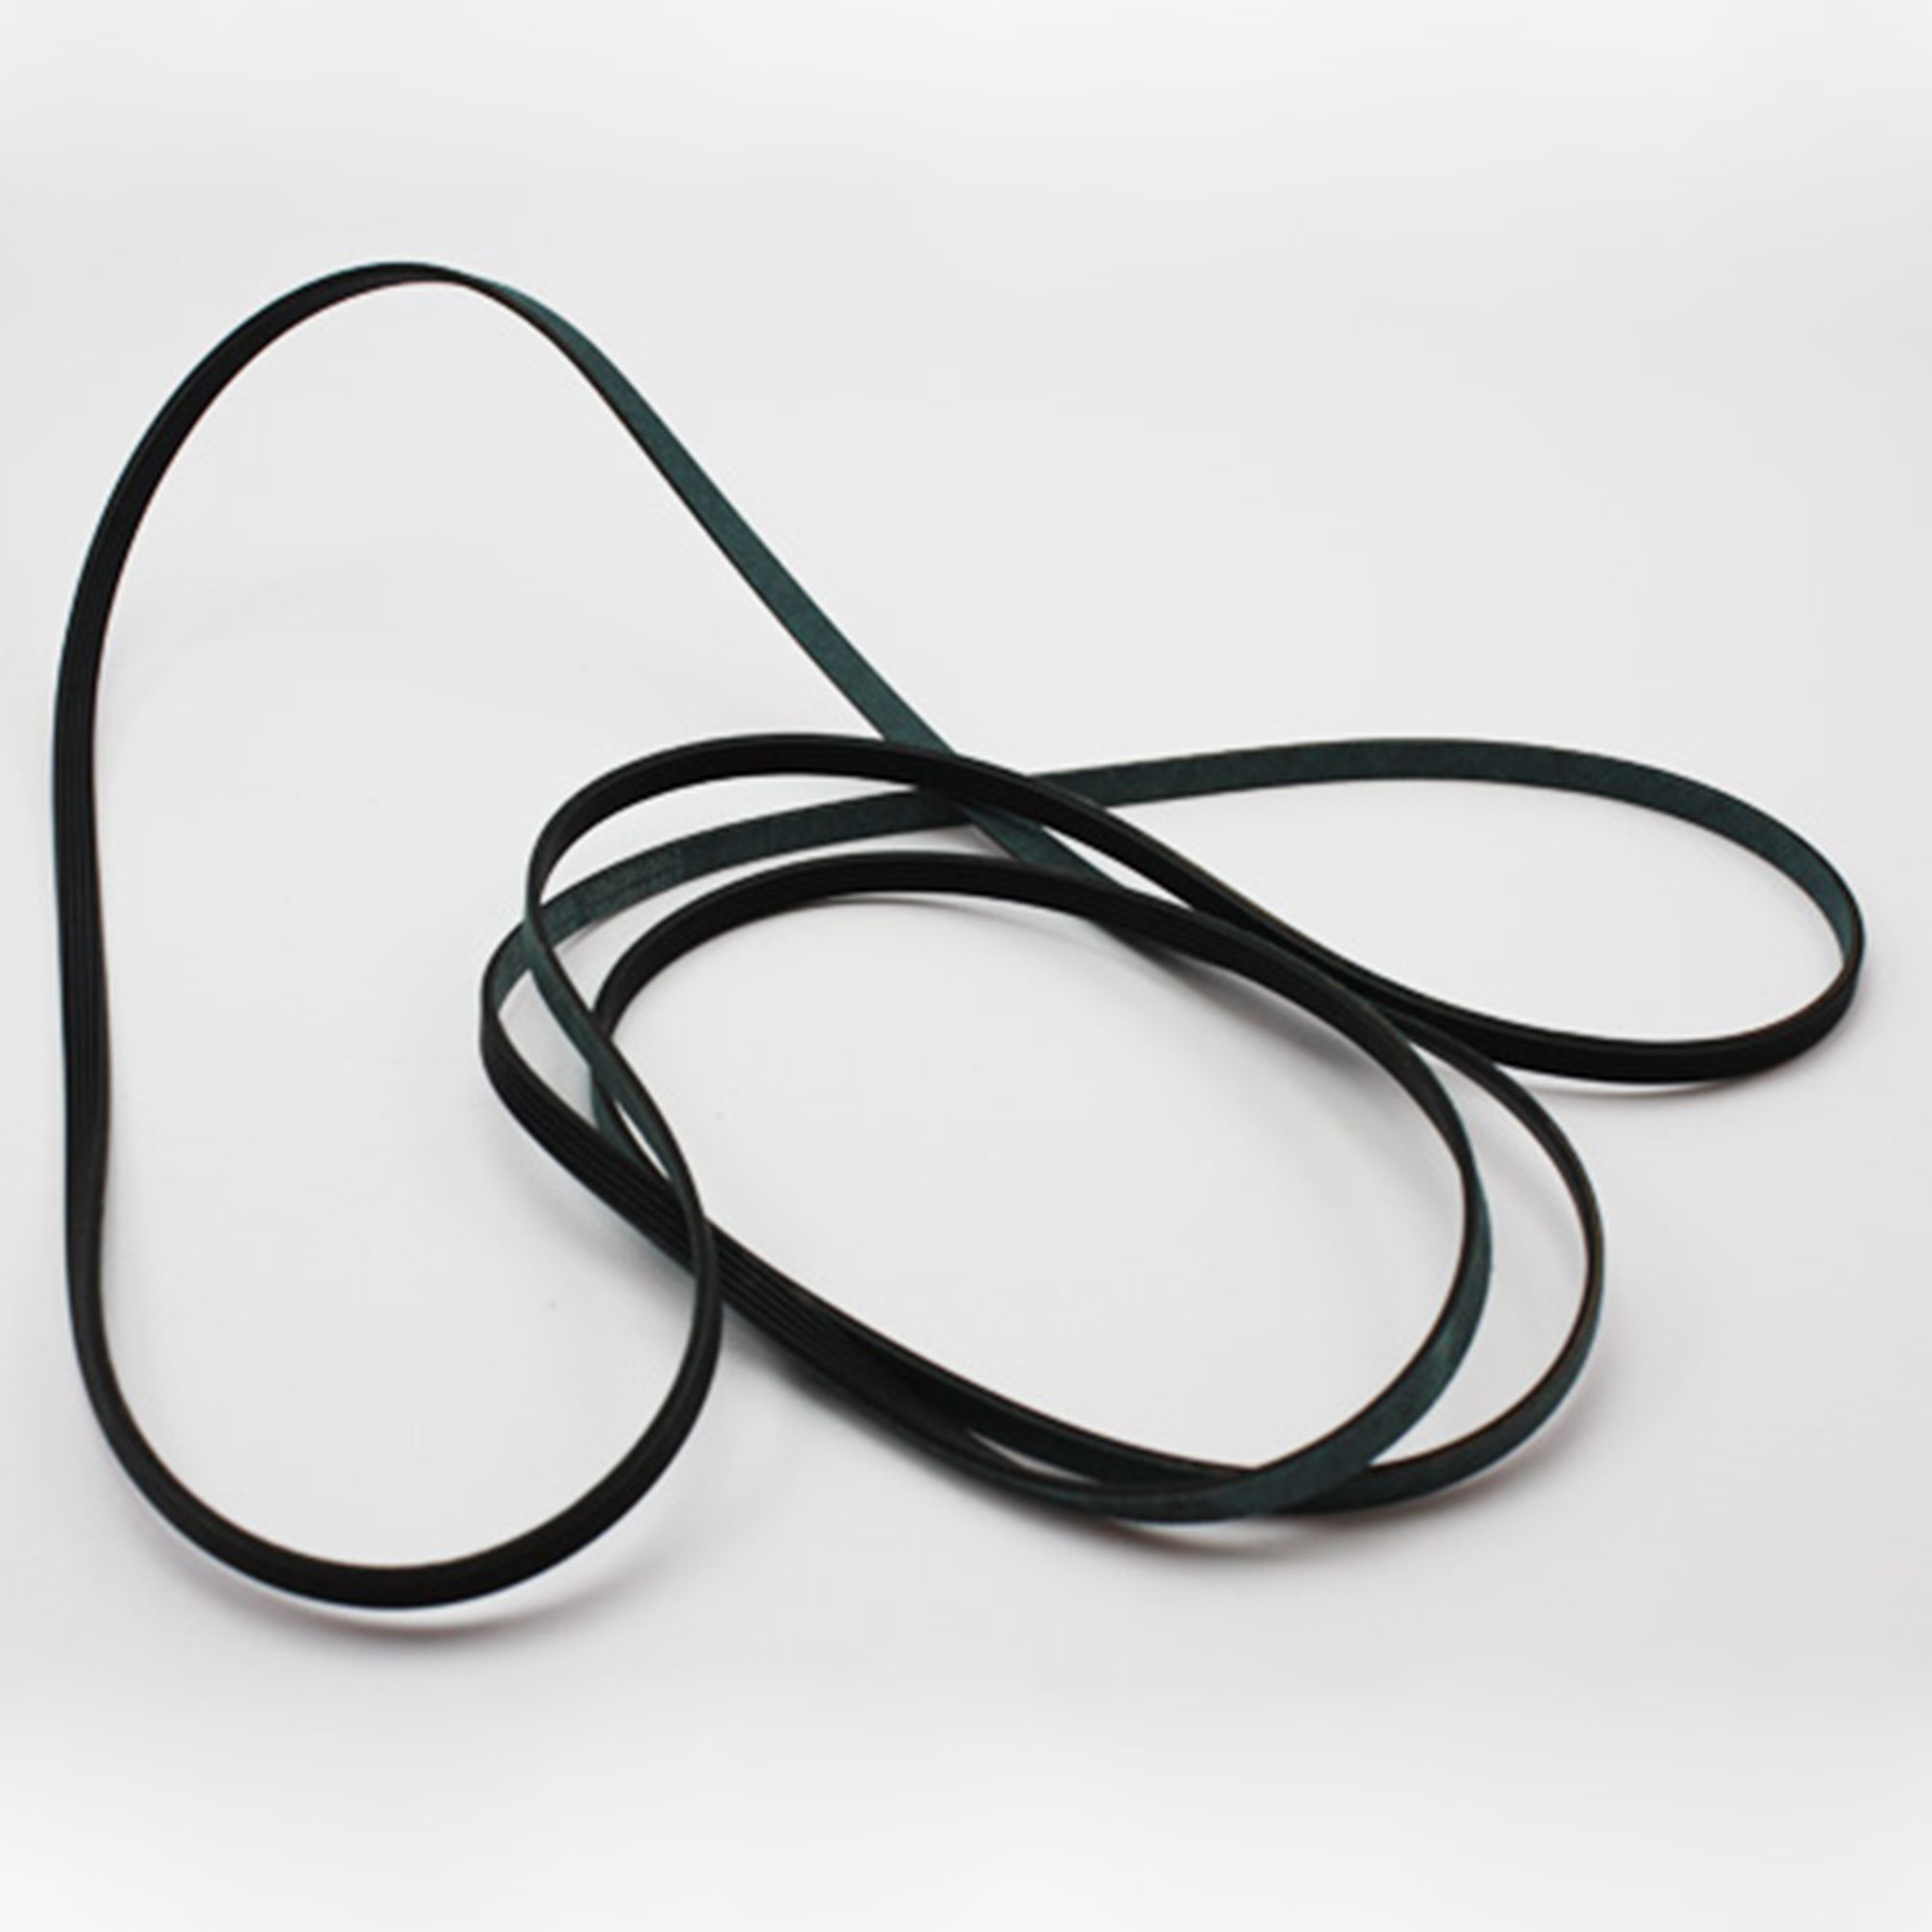 WE12M30 For GE Clothes Dryer Drive Belt